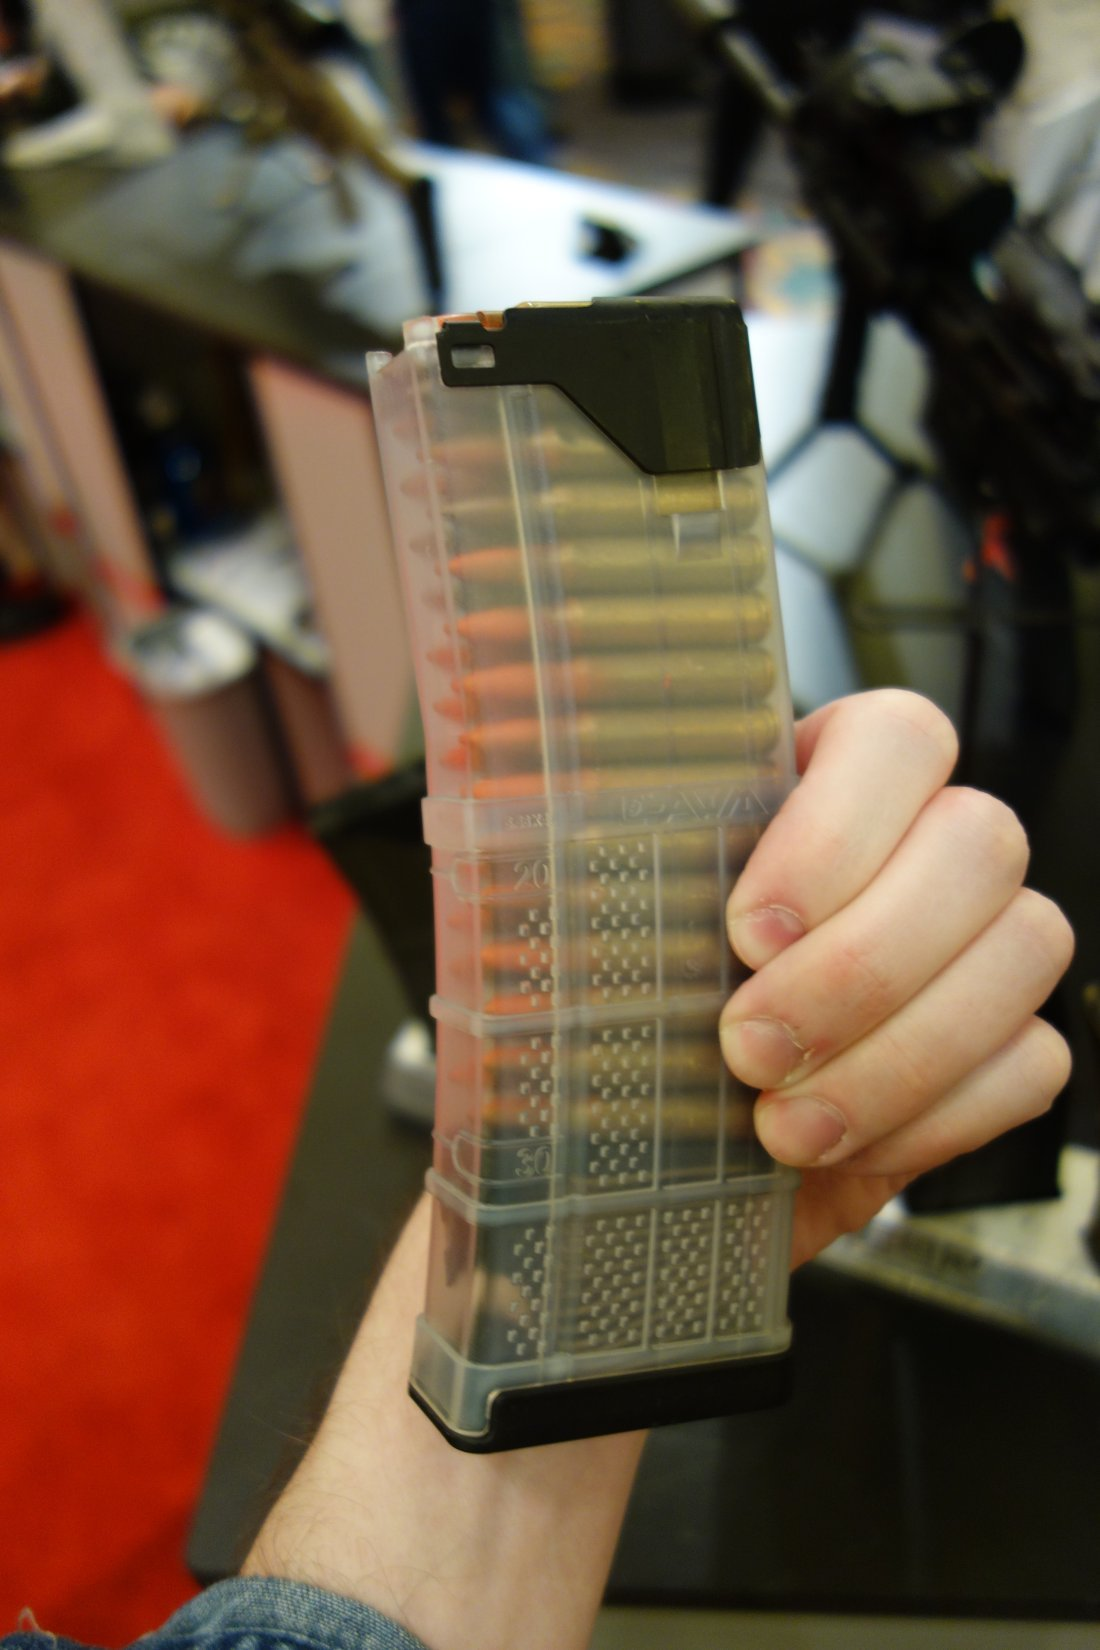 Lancer Systems Gen 2 L5 Translucent Advanced Warfighter Magazine AWM Polymer 30 Round 5.56mm AR 15 Rifle Mag SHOT Show 2013 David Crane DefenseReview.com DR 6 Gen 2 Lancer Systems L5 Translucent Advanced Warfighter Magazine (AWM): Truly Translucent Polymer 30 Round AR 15 Rifle/Carbine/SBR Mag!